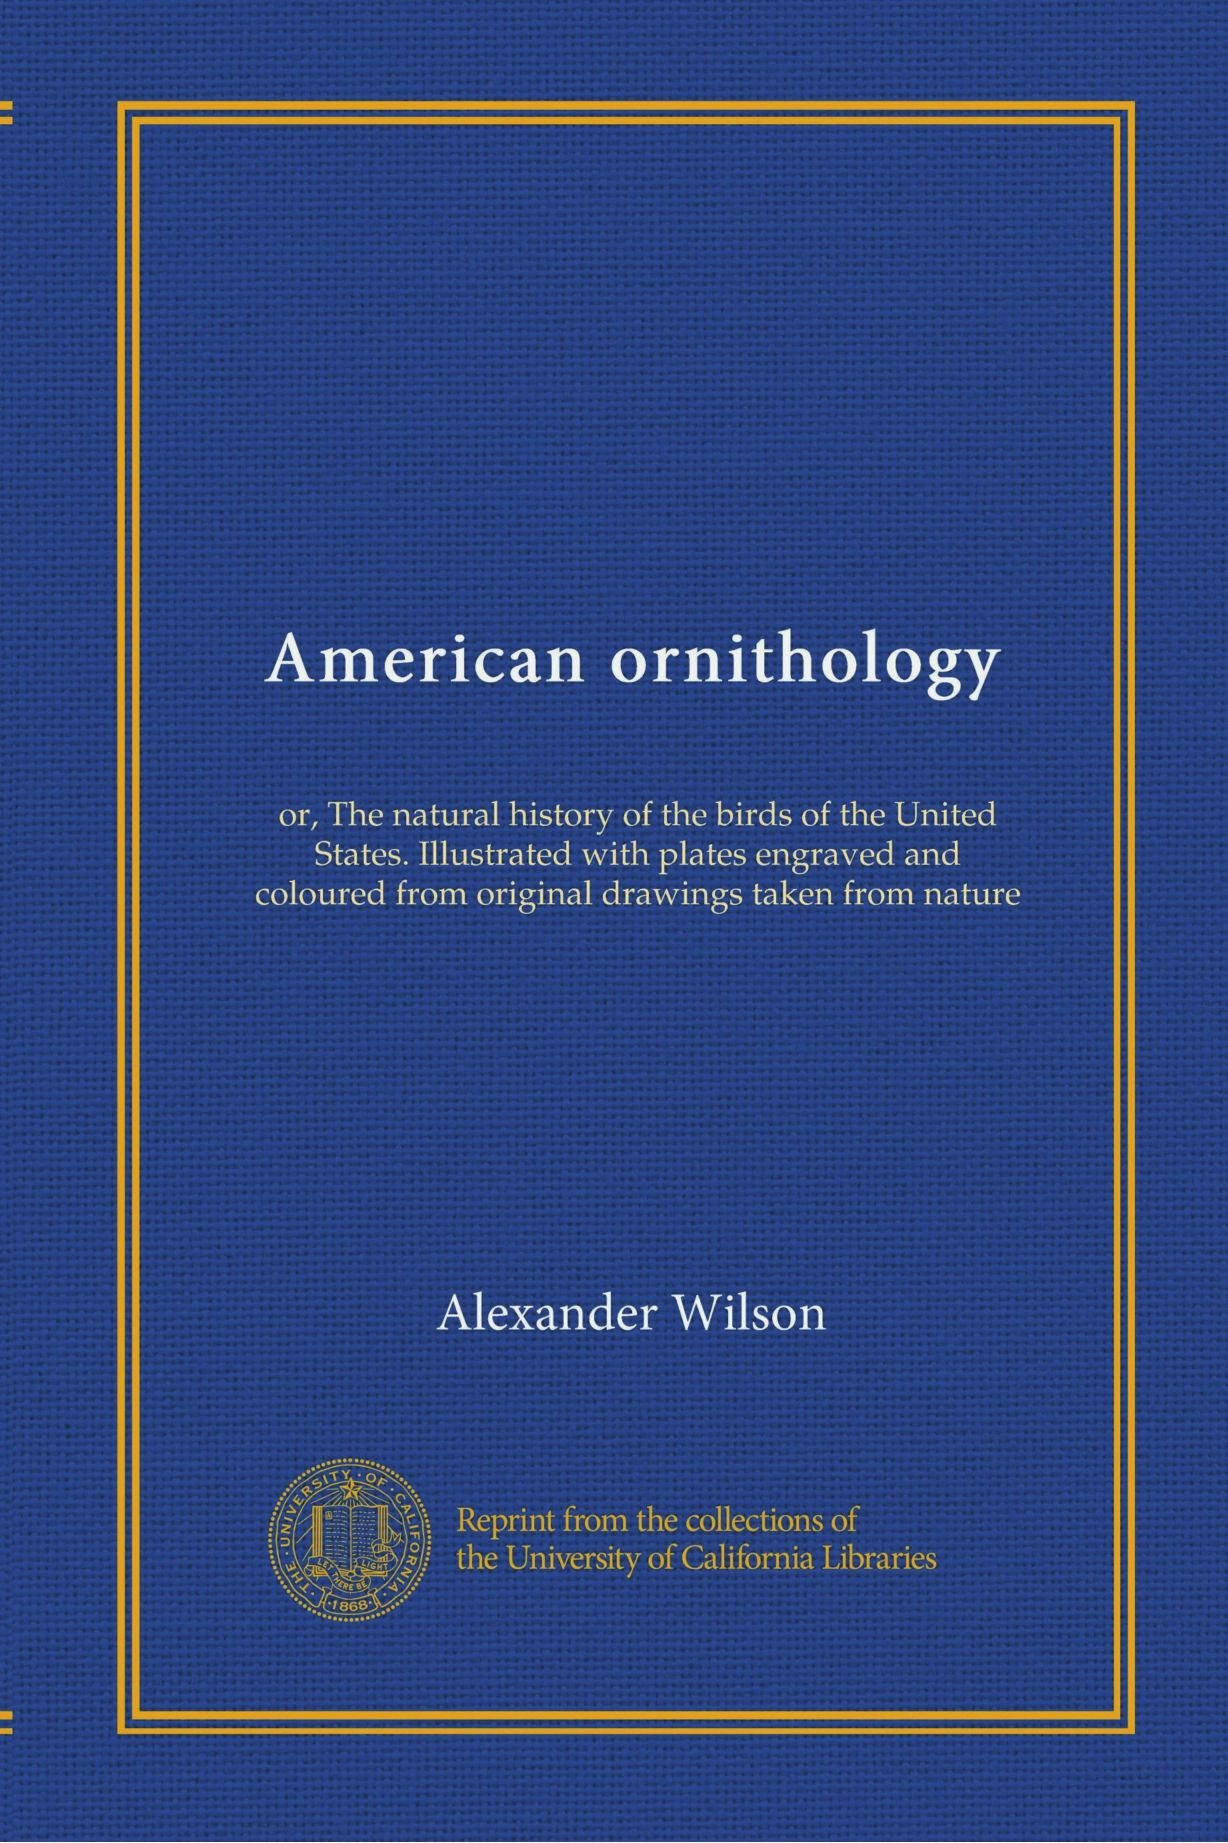 Download American ornithology: or, The natural history of the birds of the United States. Illustrated with plates engraved and coloured from original drawings taken from nature pdf epub